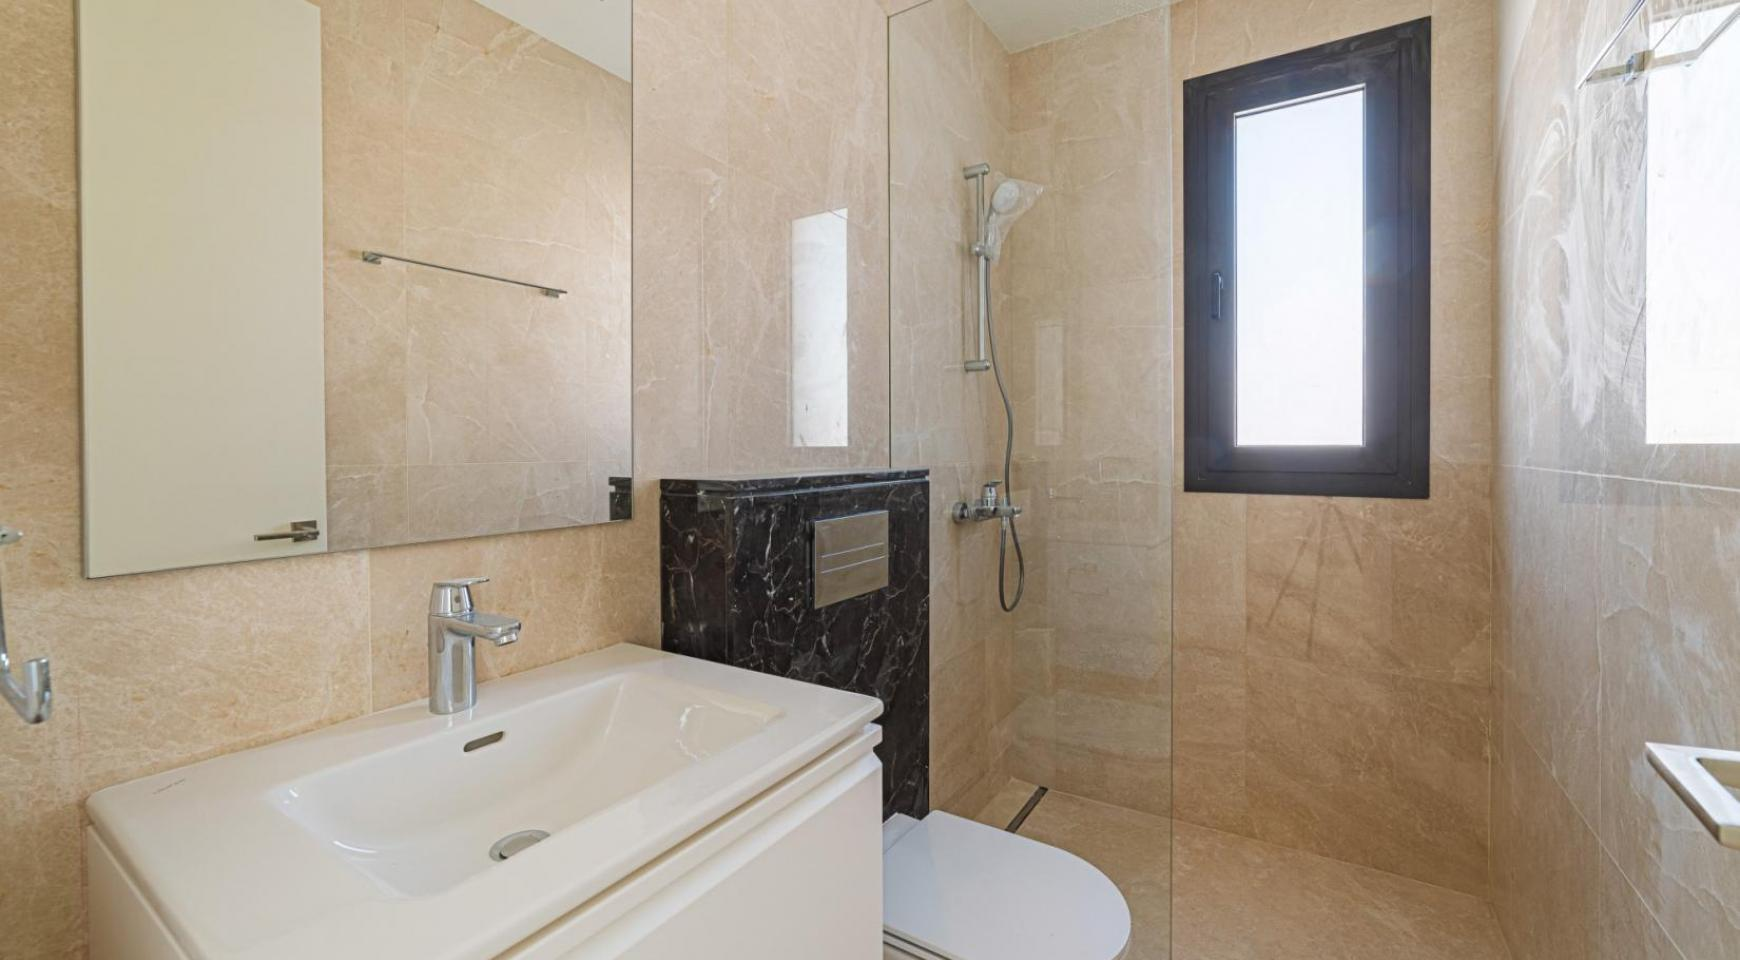 Hortensia Residence, Apt. 201. 2 Bedroom Apartment within a New Complex near the Sea  - 44